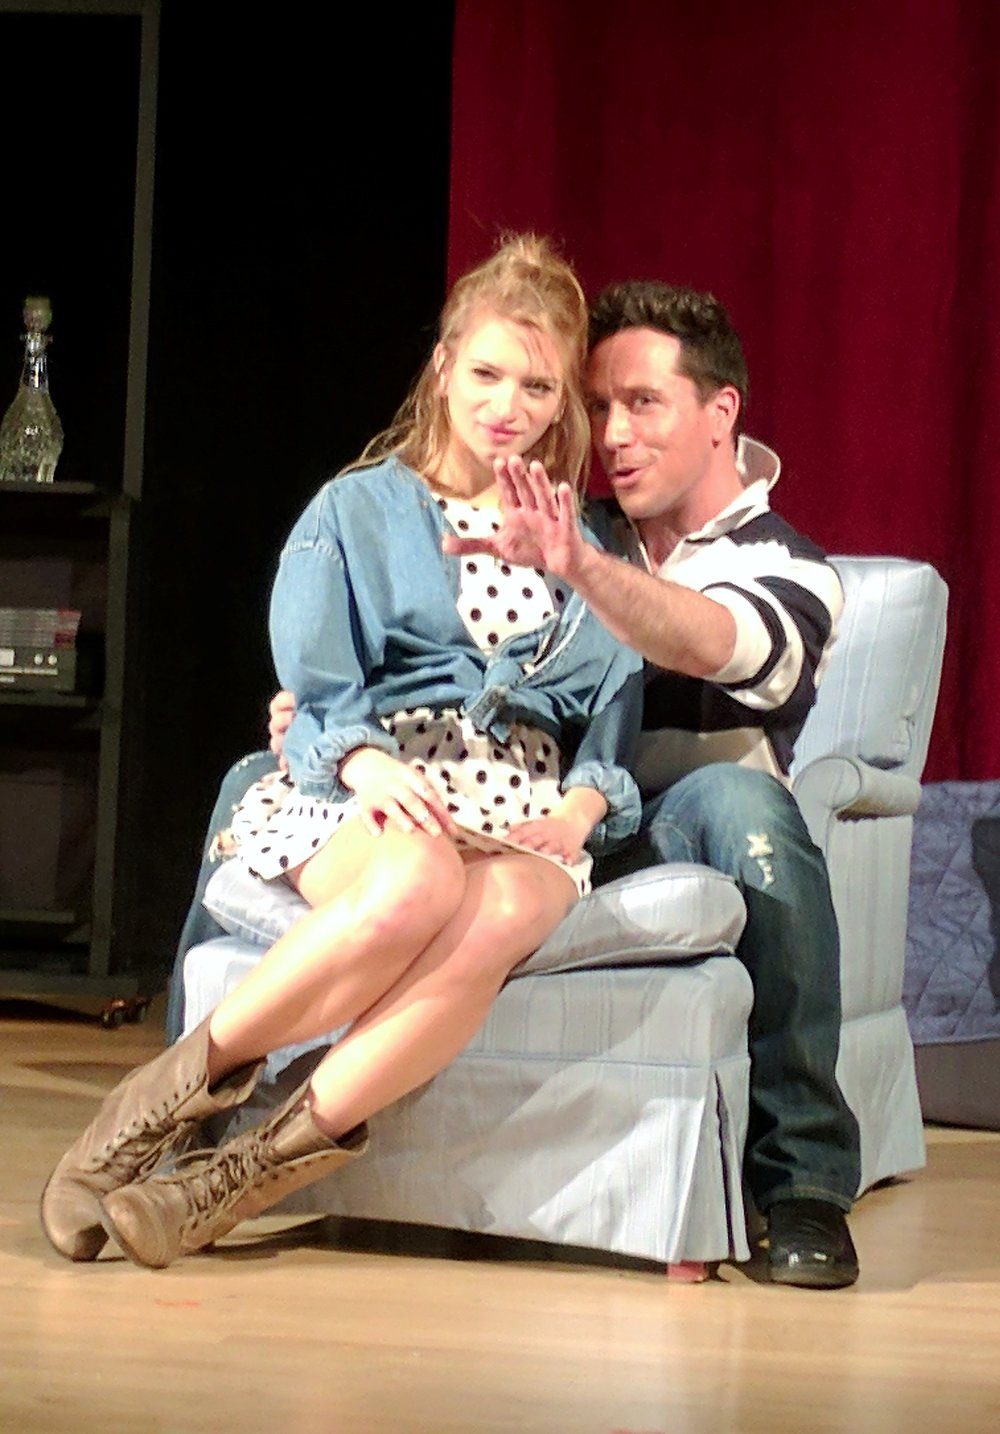 Lucy Miller (L) as Sybil and Ian LaChance (R) as Dorian